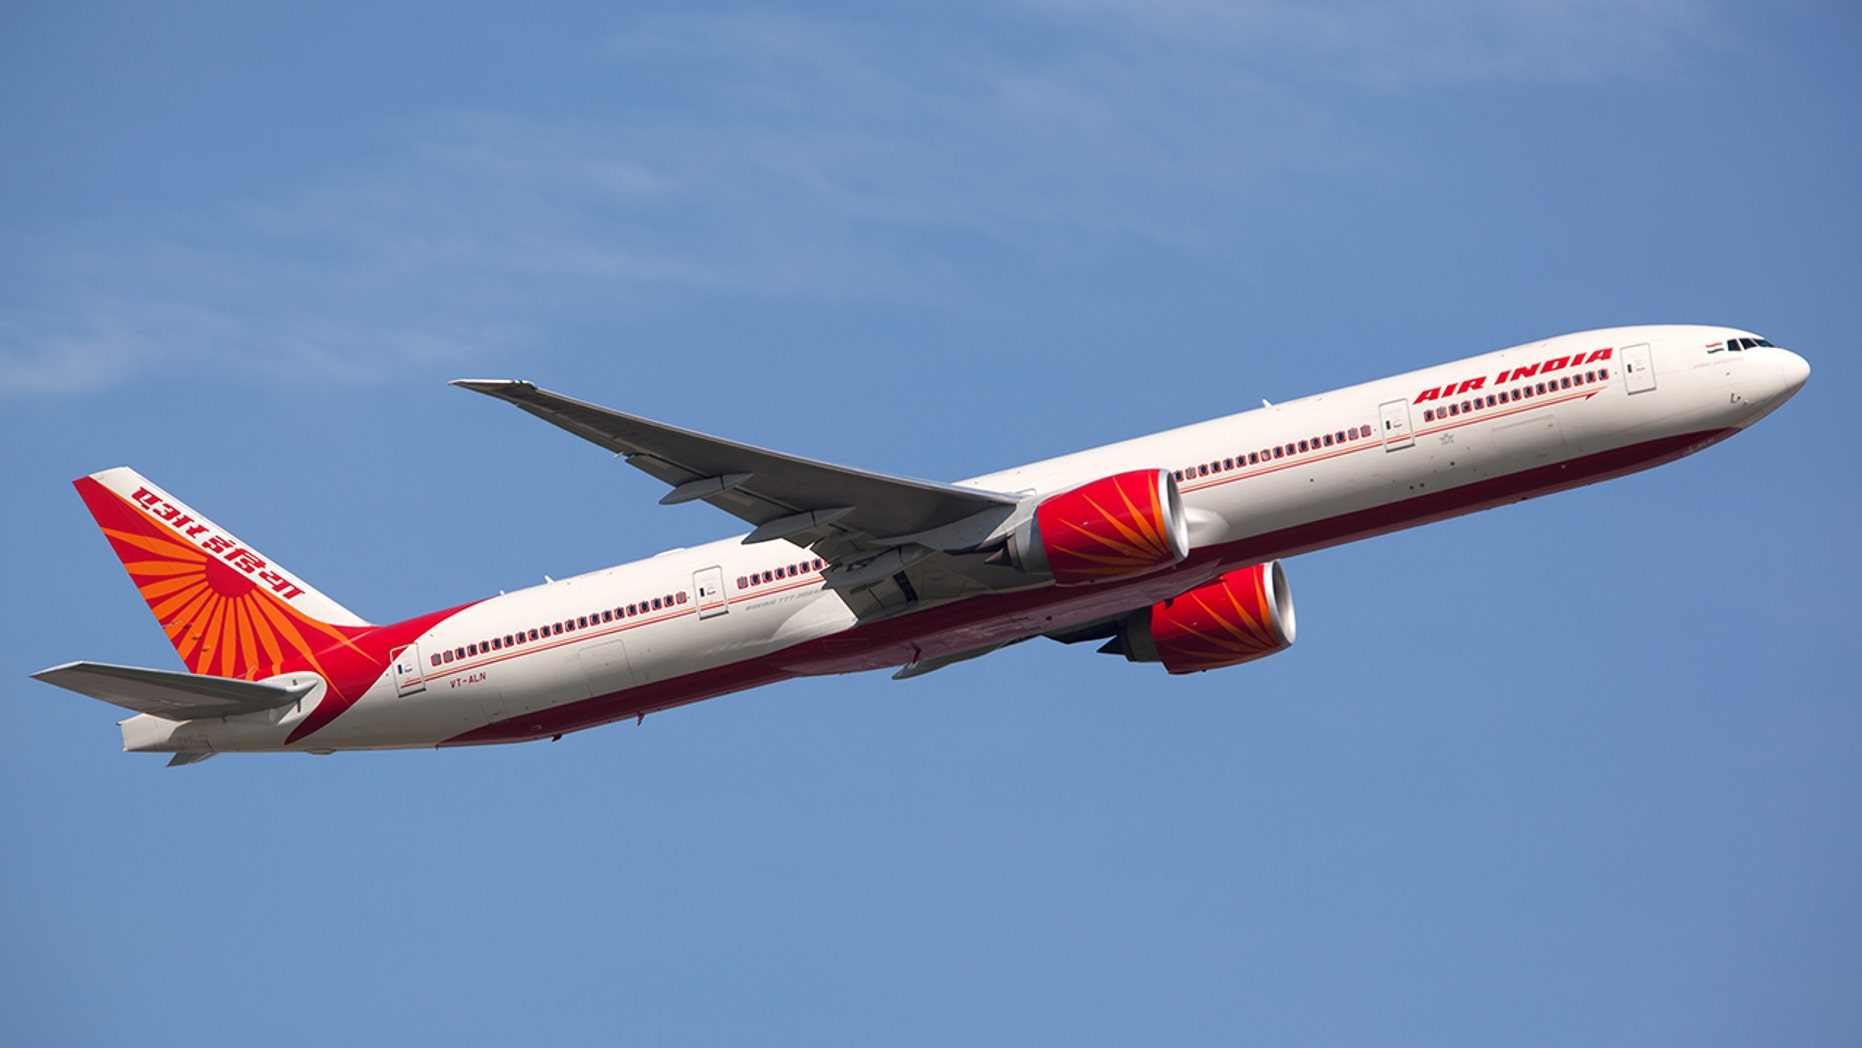 An Air India plane suffered damage after smashing into a wall during takeoff.